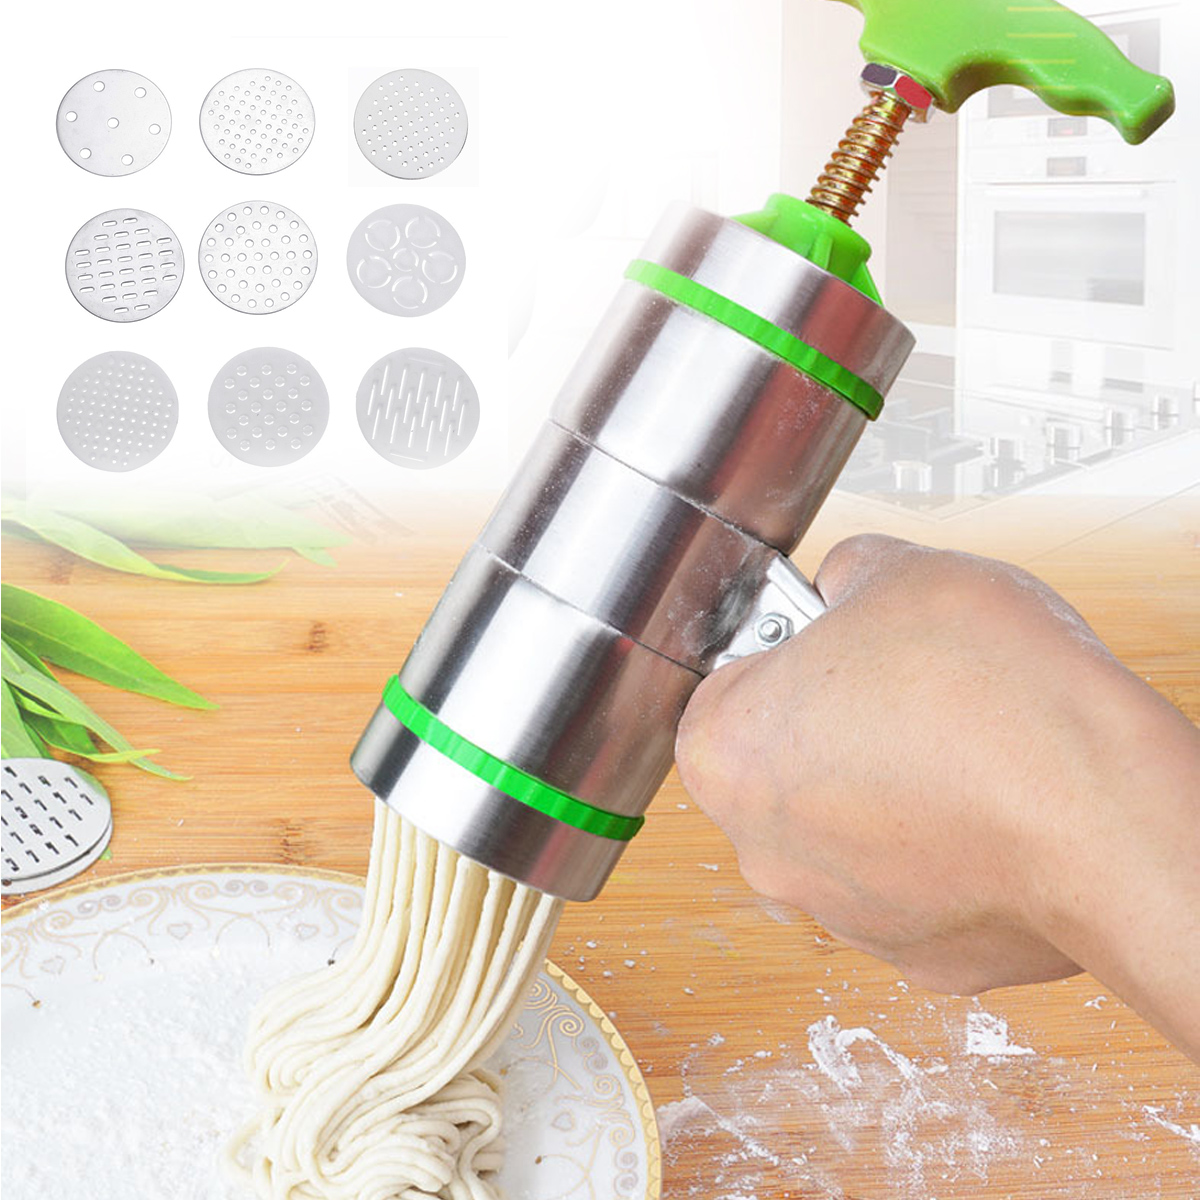 9 Mode Stainless Steel Pasta Noodle Maker Machine Handmade Noodles Press Spaghetti Machine Para Hacer Noodles Fruit Press 20 000 leagues under the sea student s book cd